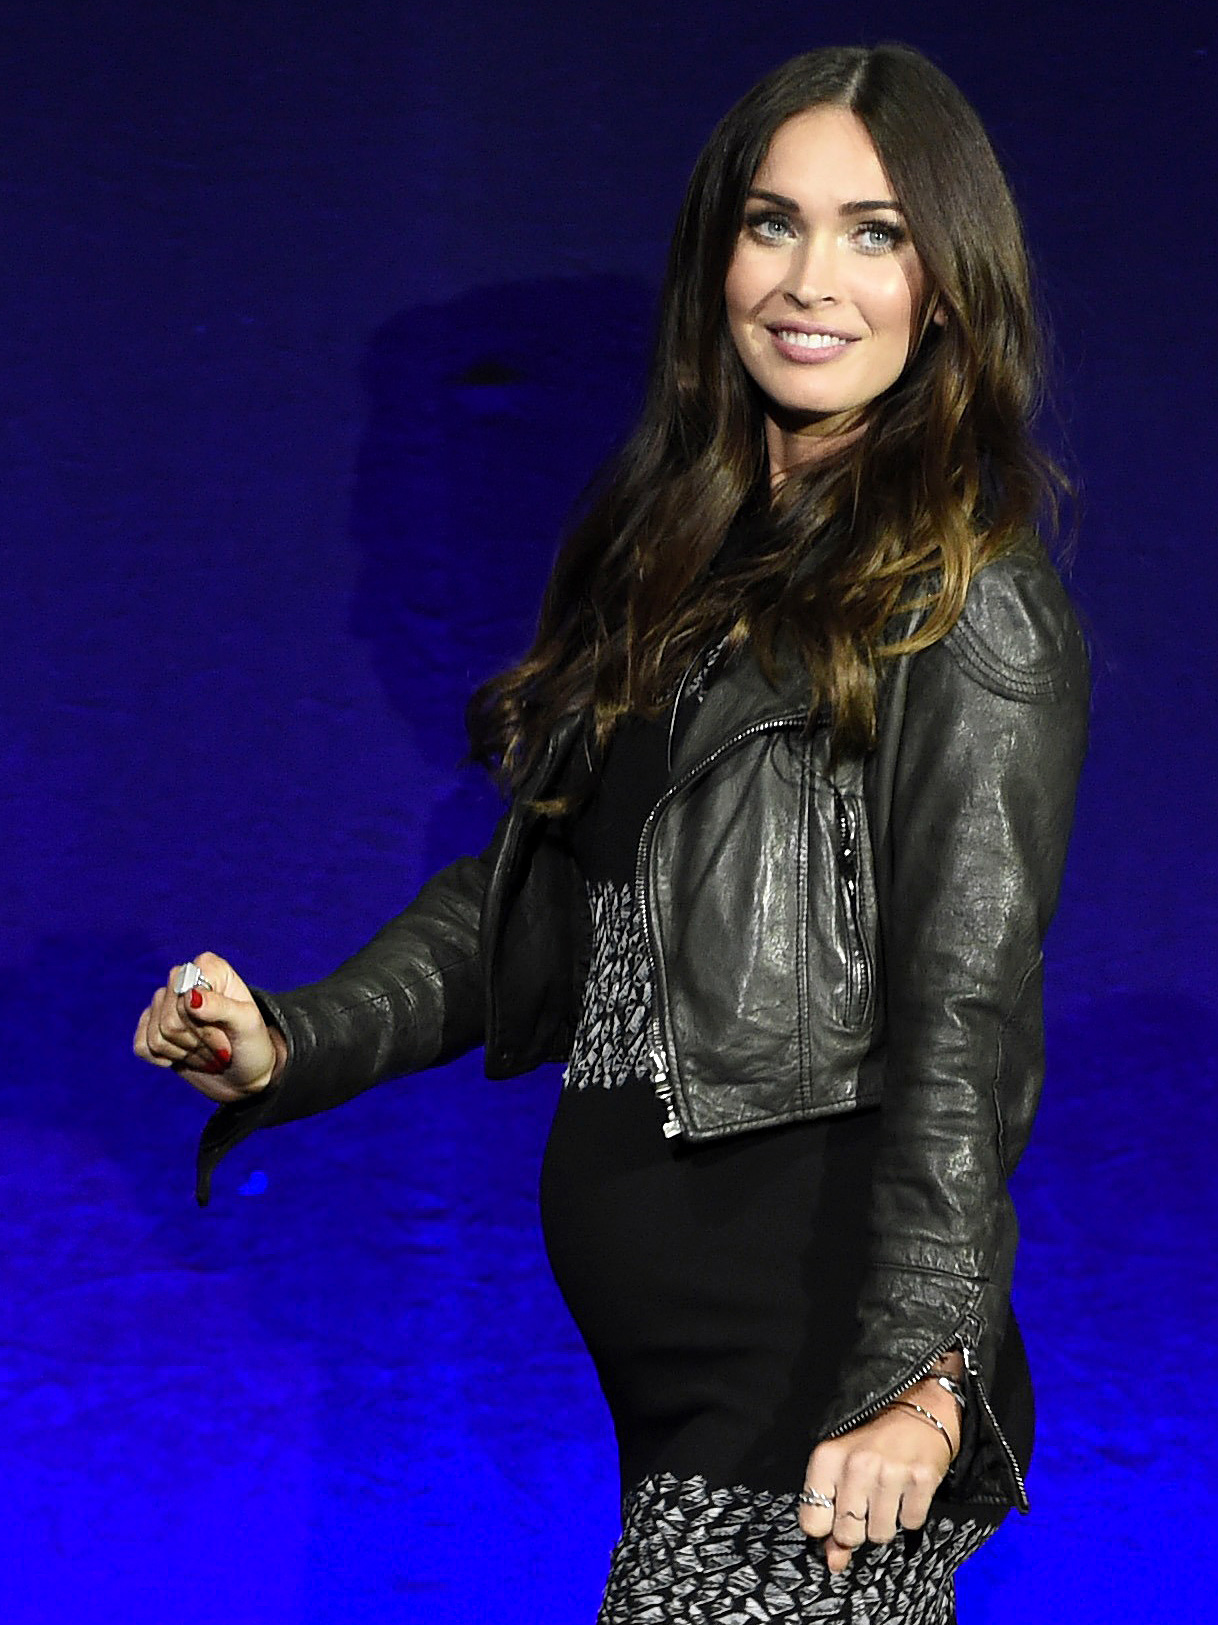 Megan Fox Is Pregnant With Her Third Child Megan Fox